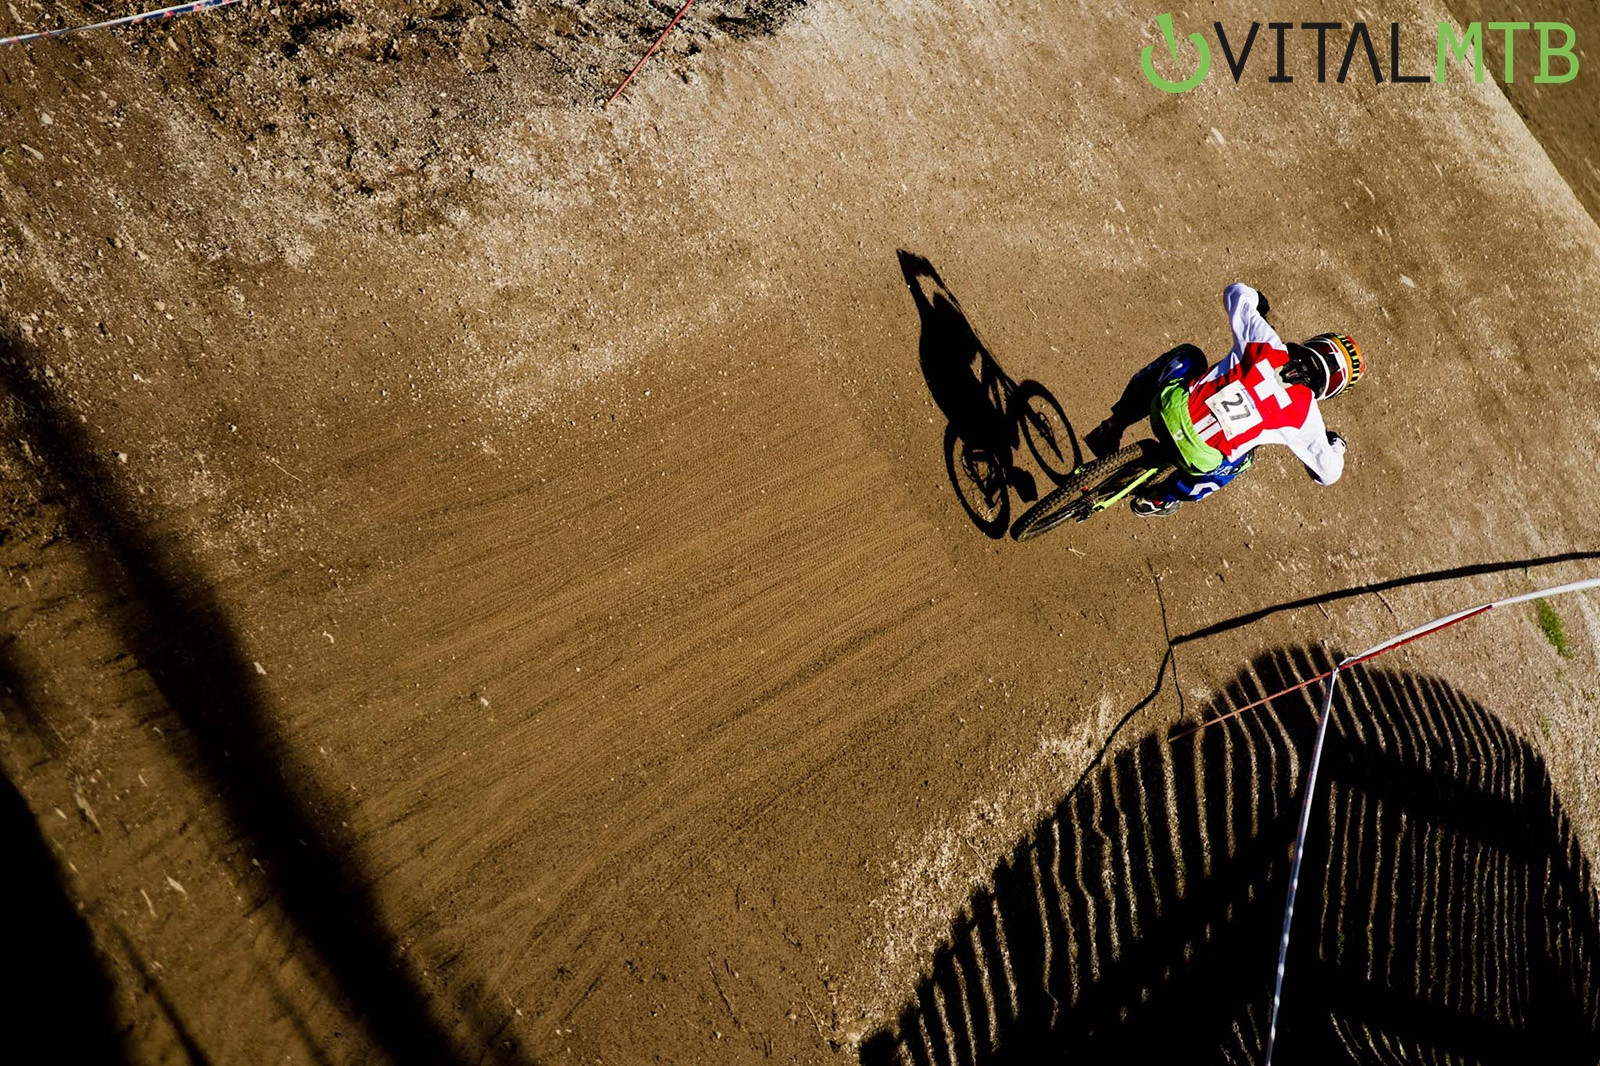 Noel Niederberger, 4th Place in Junior Men at Worlds - How Did You Miss It? - Mountain Biking Pictures - Vital MTB